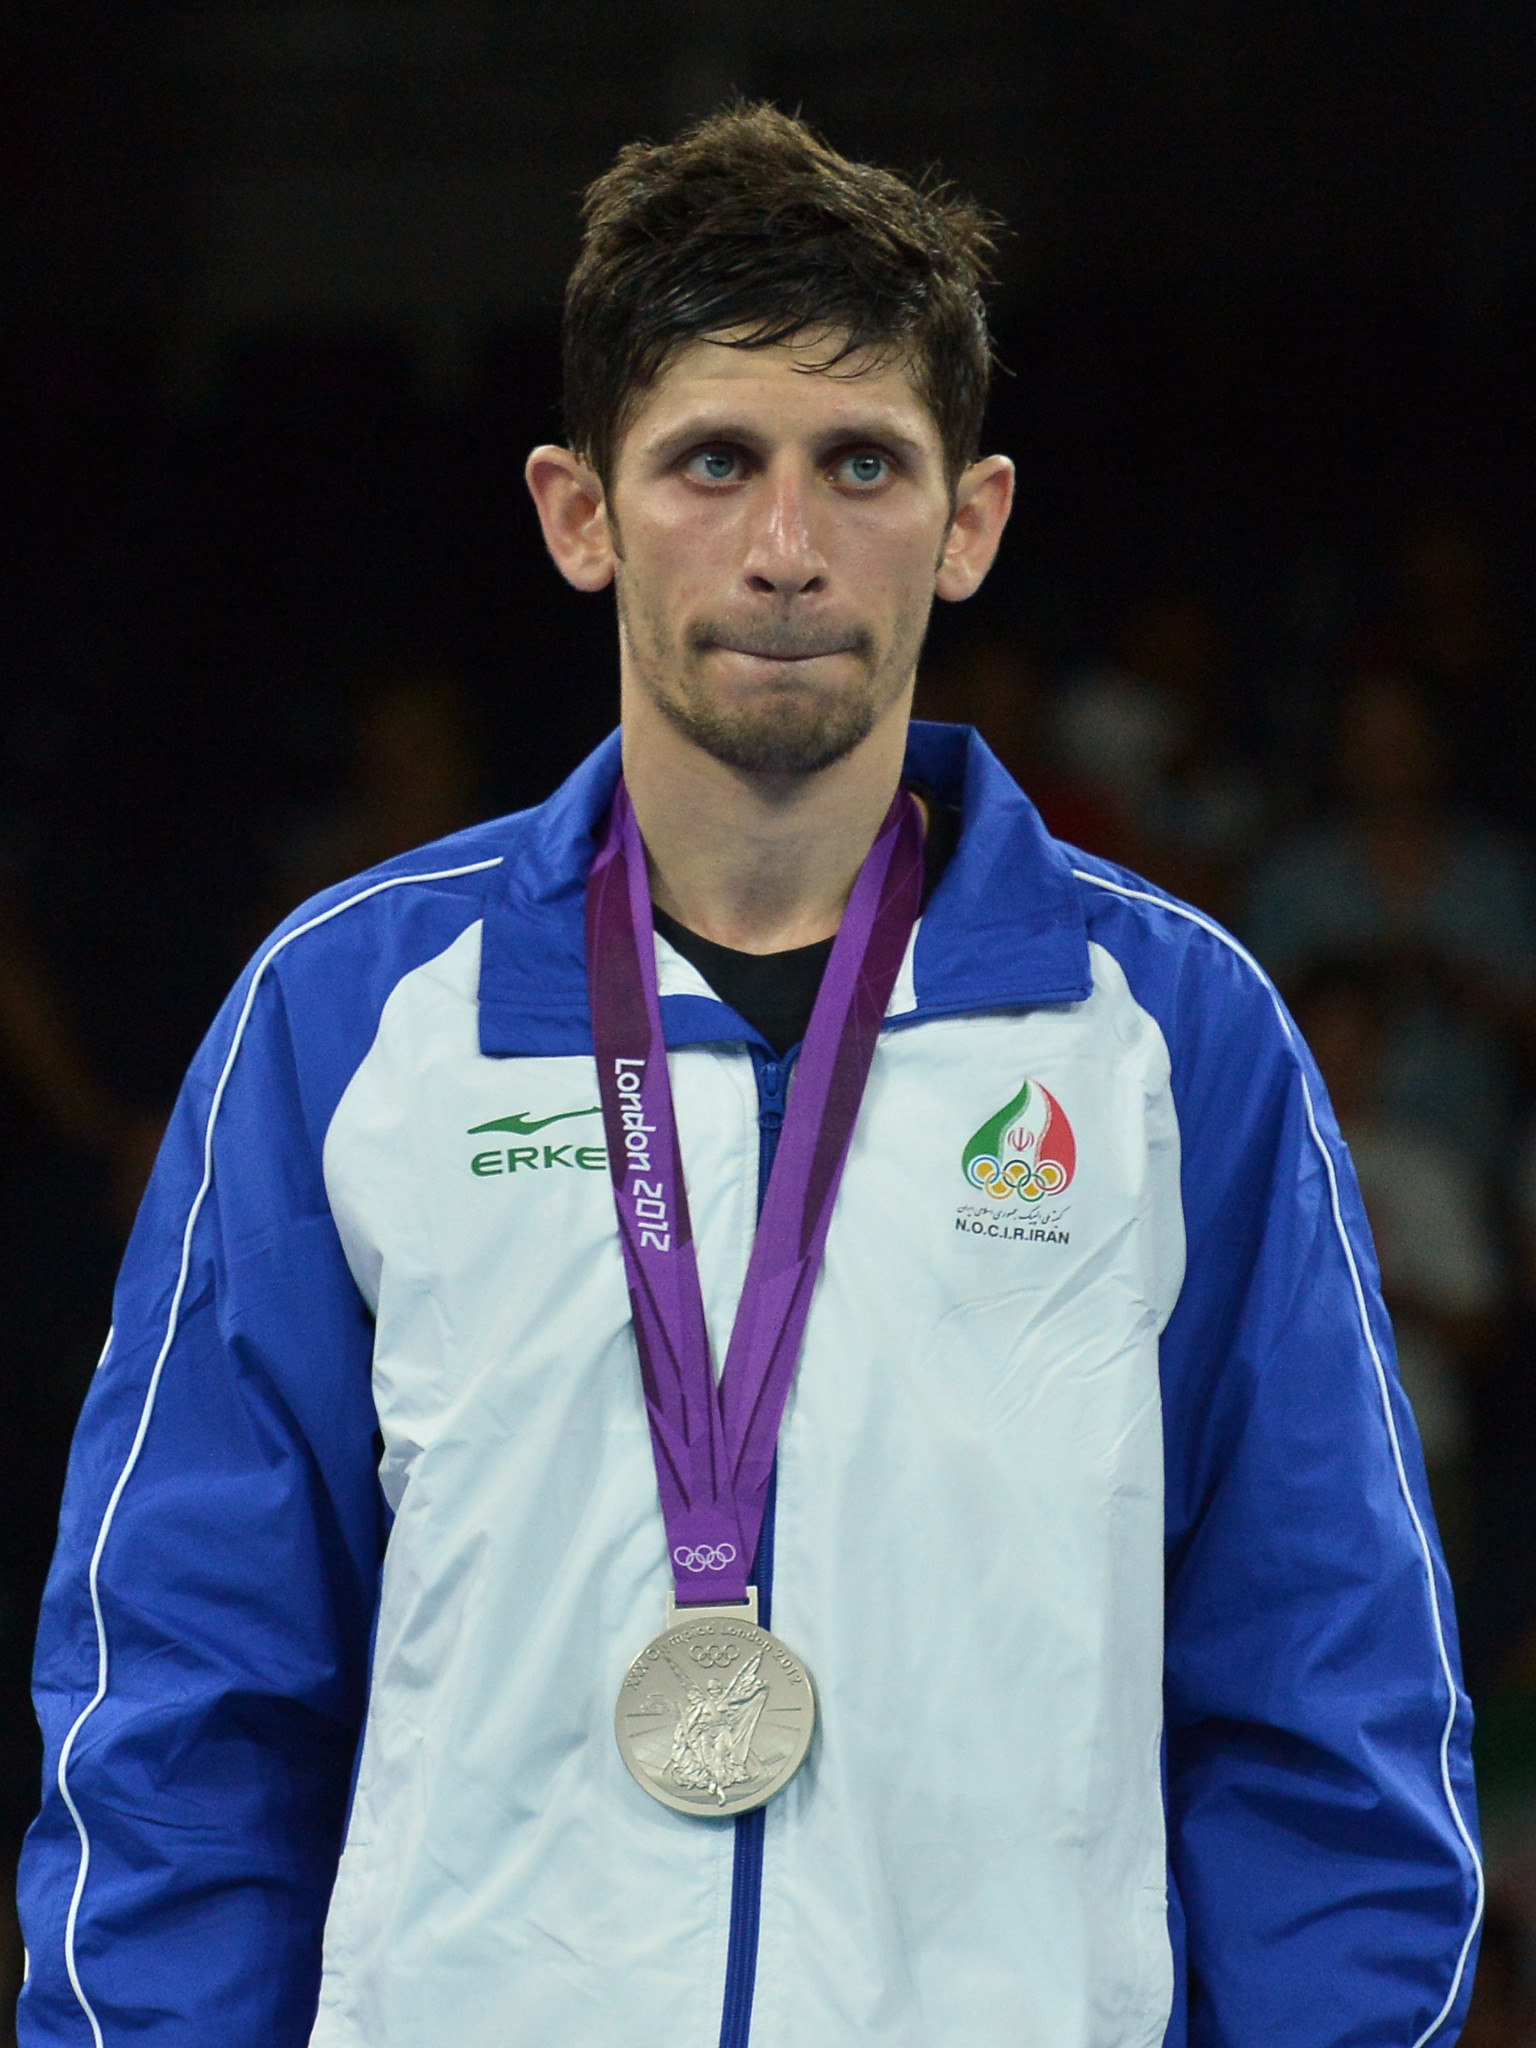 Mohammad Bagheri Motamed won silver at the London 2012 Olympics in the 68kg category ©Getty Images